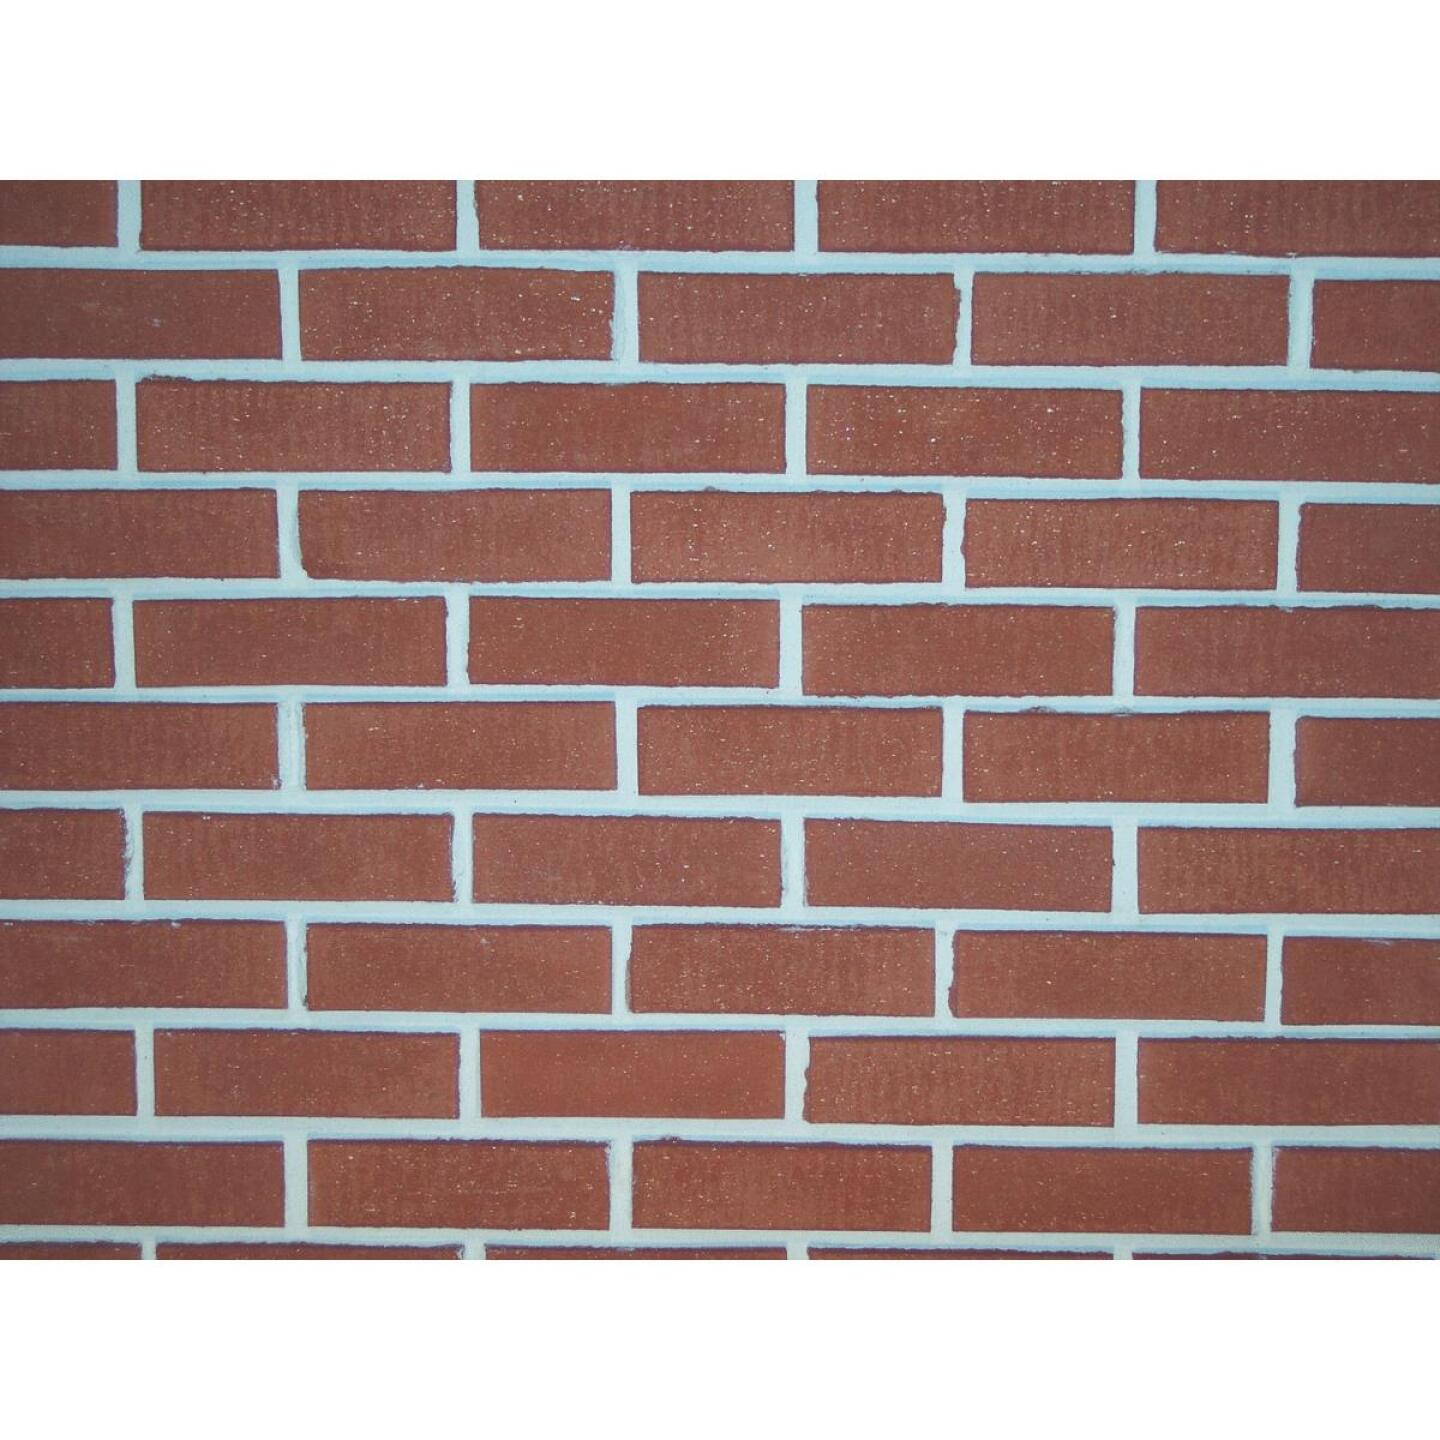 Z-Brick Inca 2-1/4 In. x 8 In. Red Facing Brick Image 1